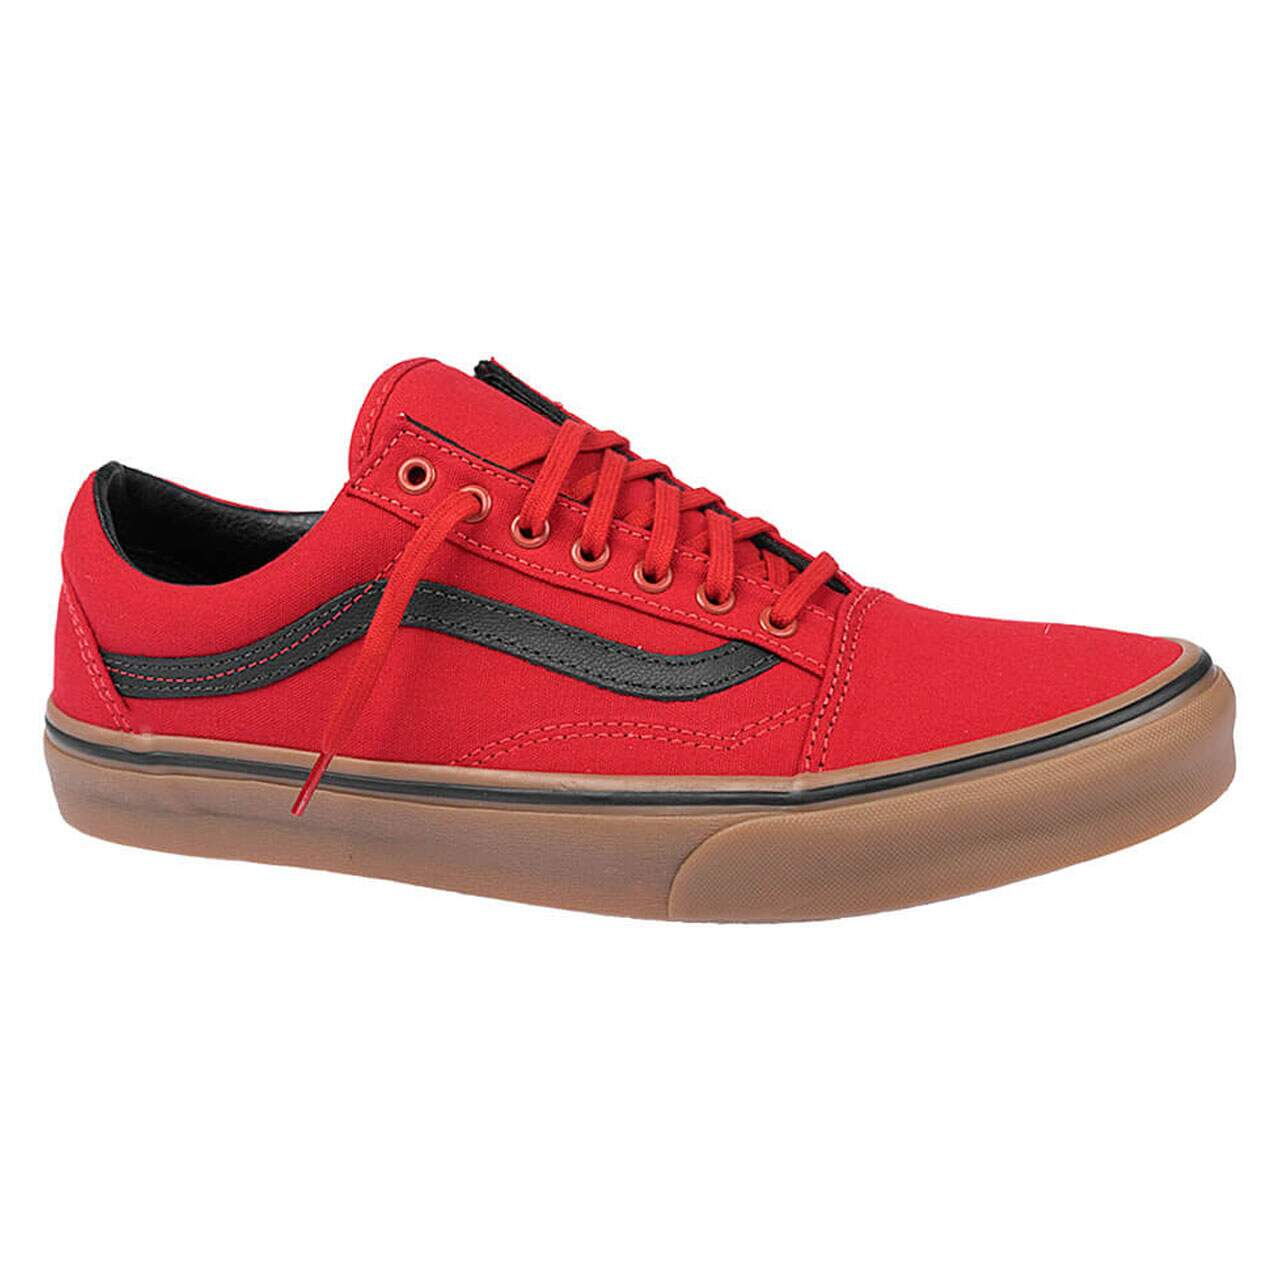 Tênis Vans Old Skool Gum Racing Red